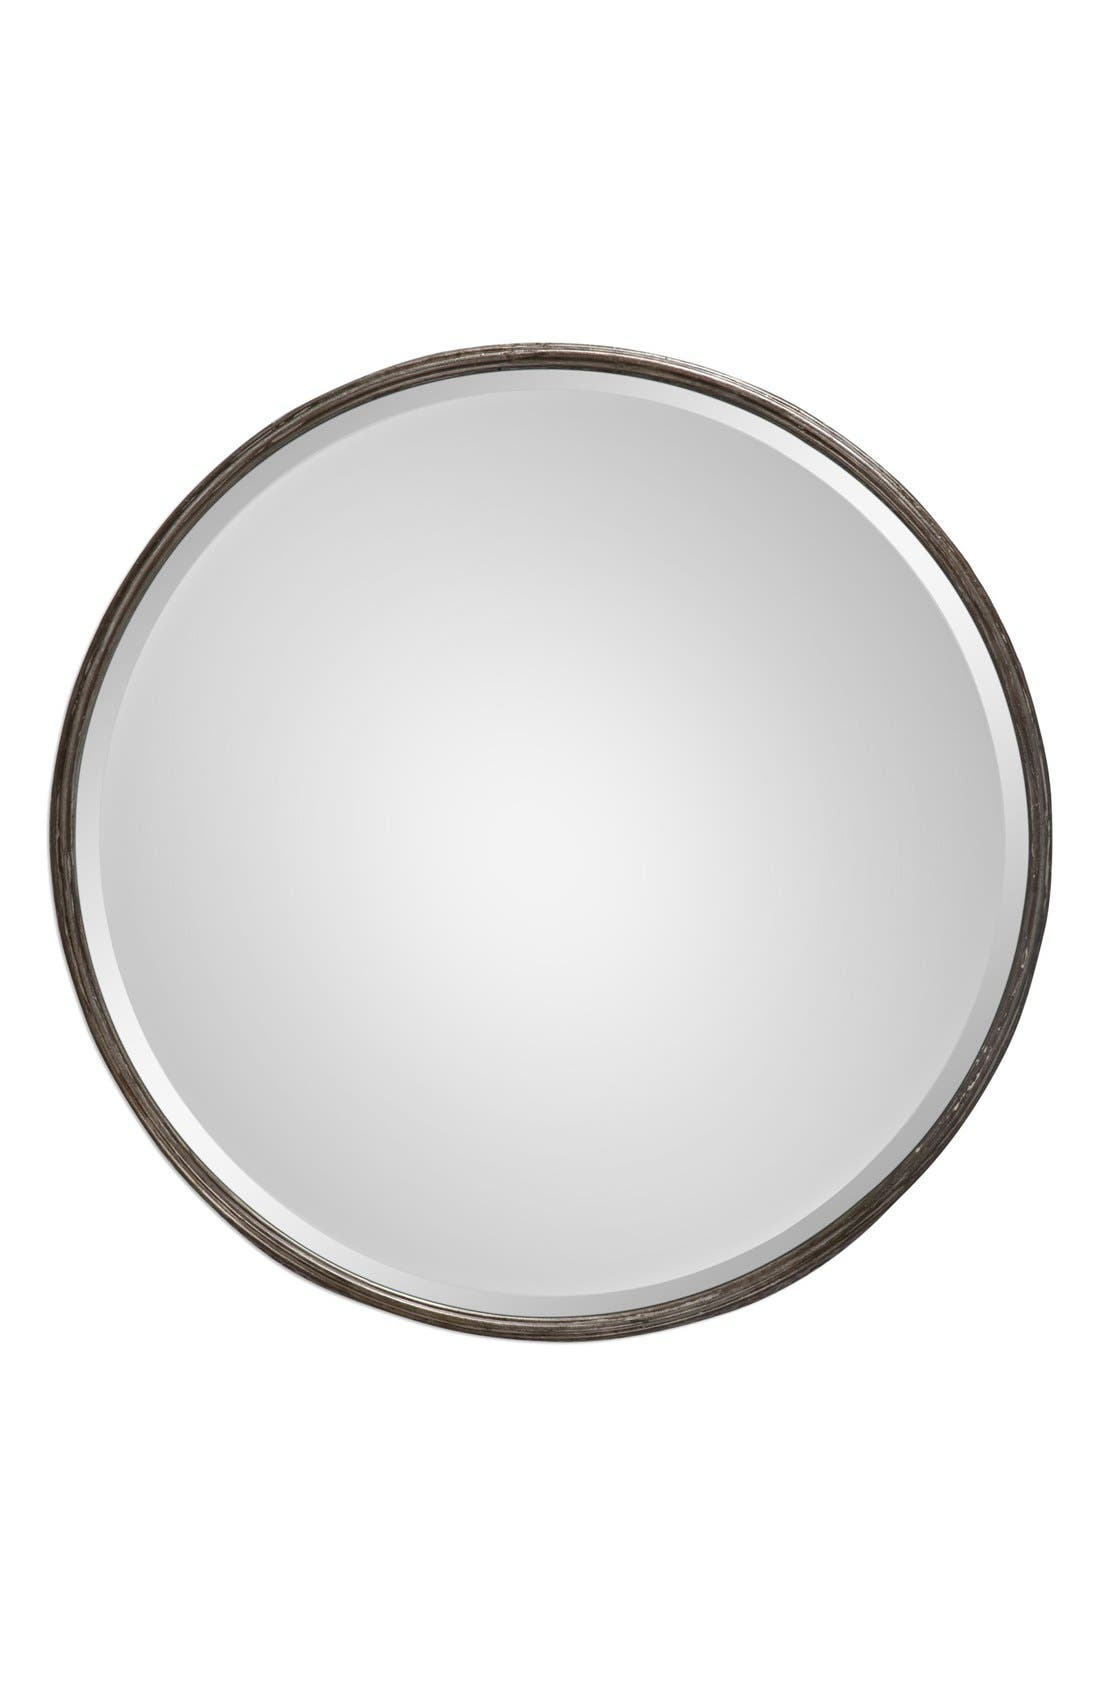 Alternate Image 1 Selected - Uttermost 'Nova' Round Metal Mirror